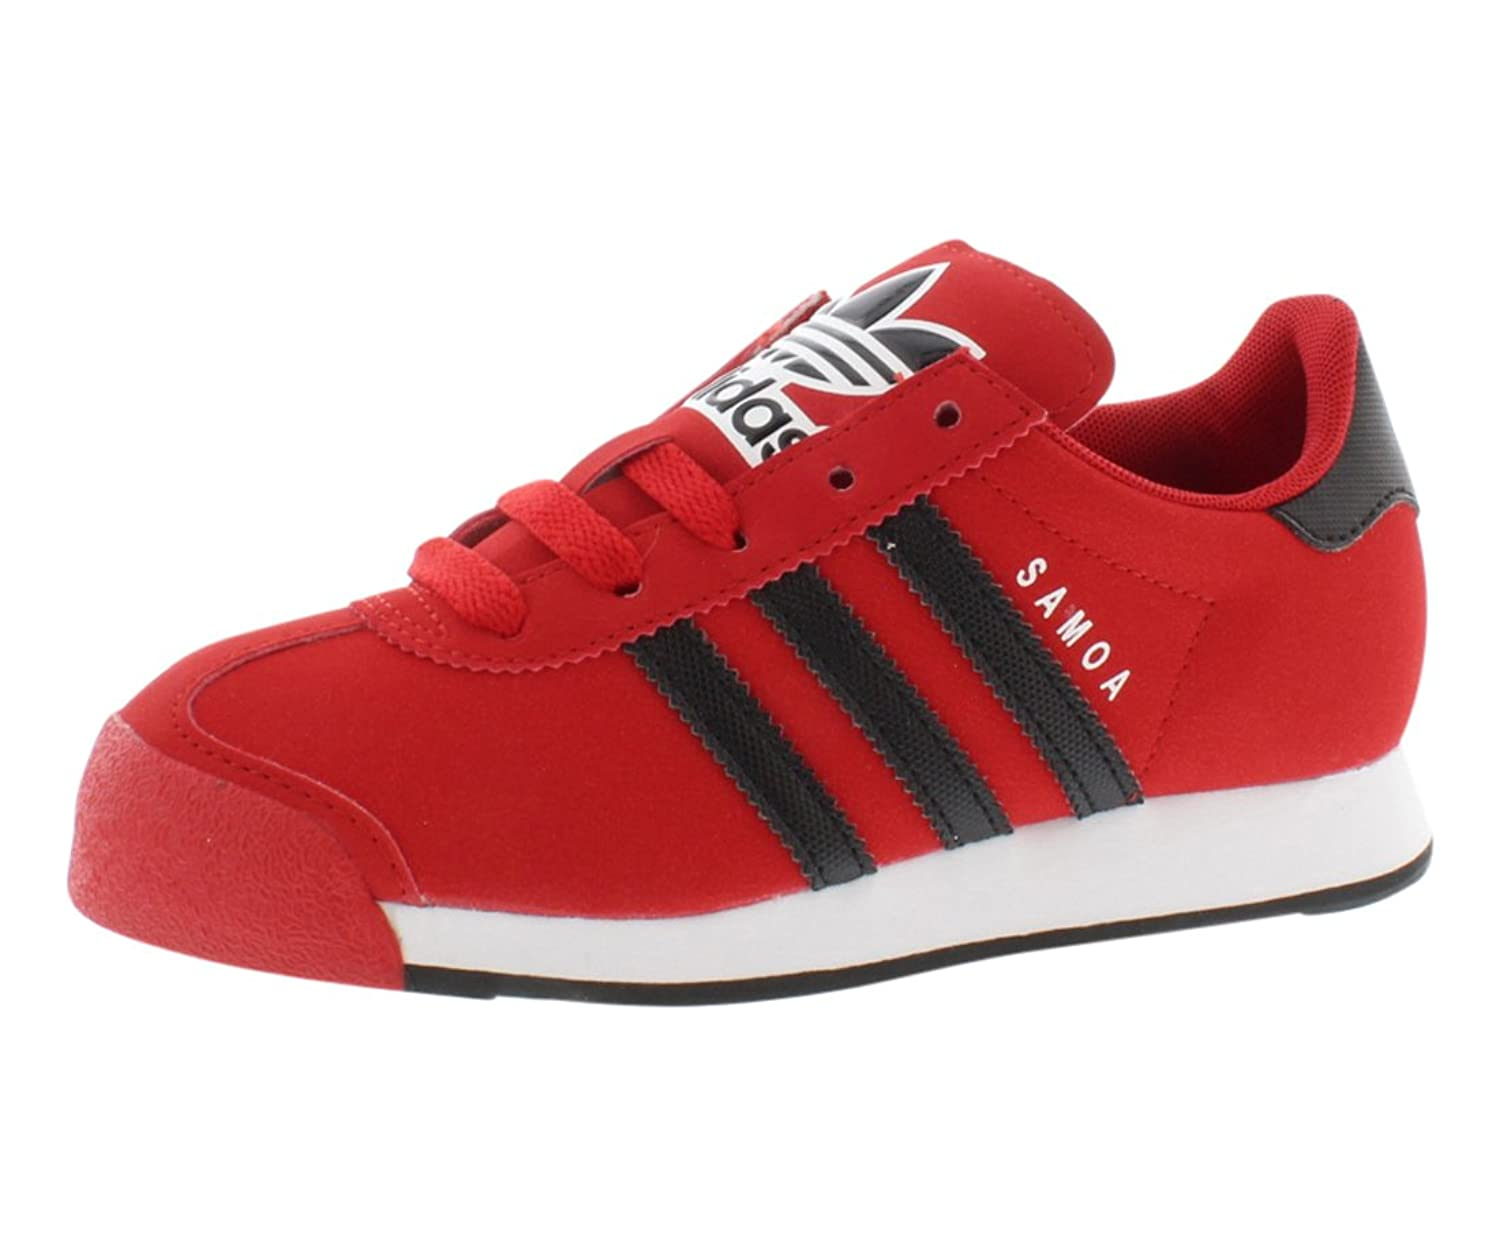 Adidas Samoa Kids' Casual sneakers adidas x pharrell little kids superstar supercolor